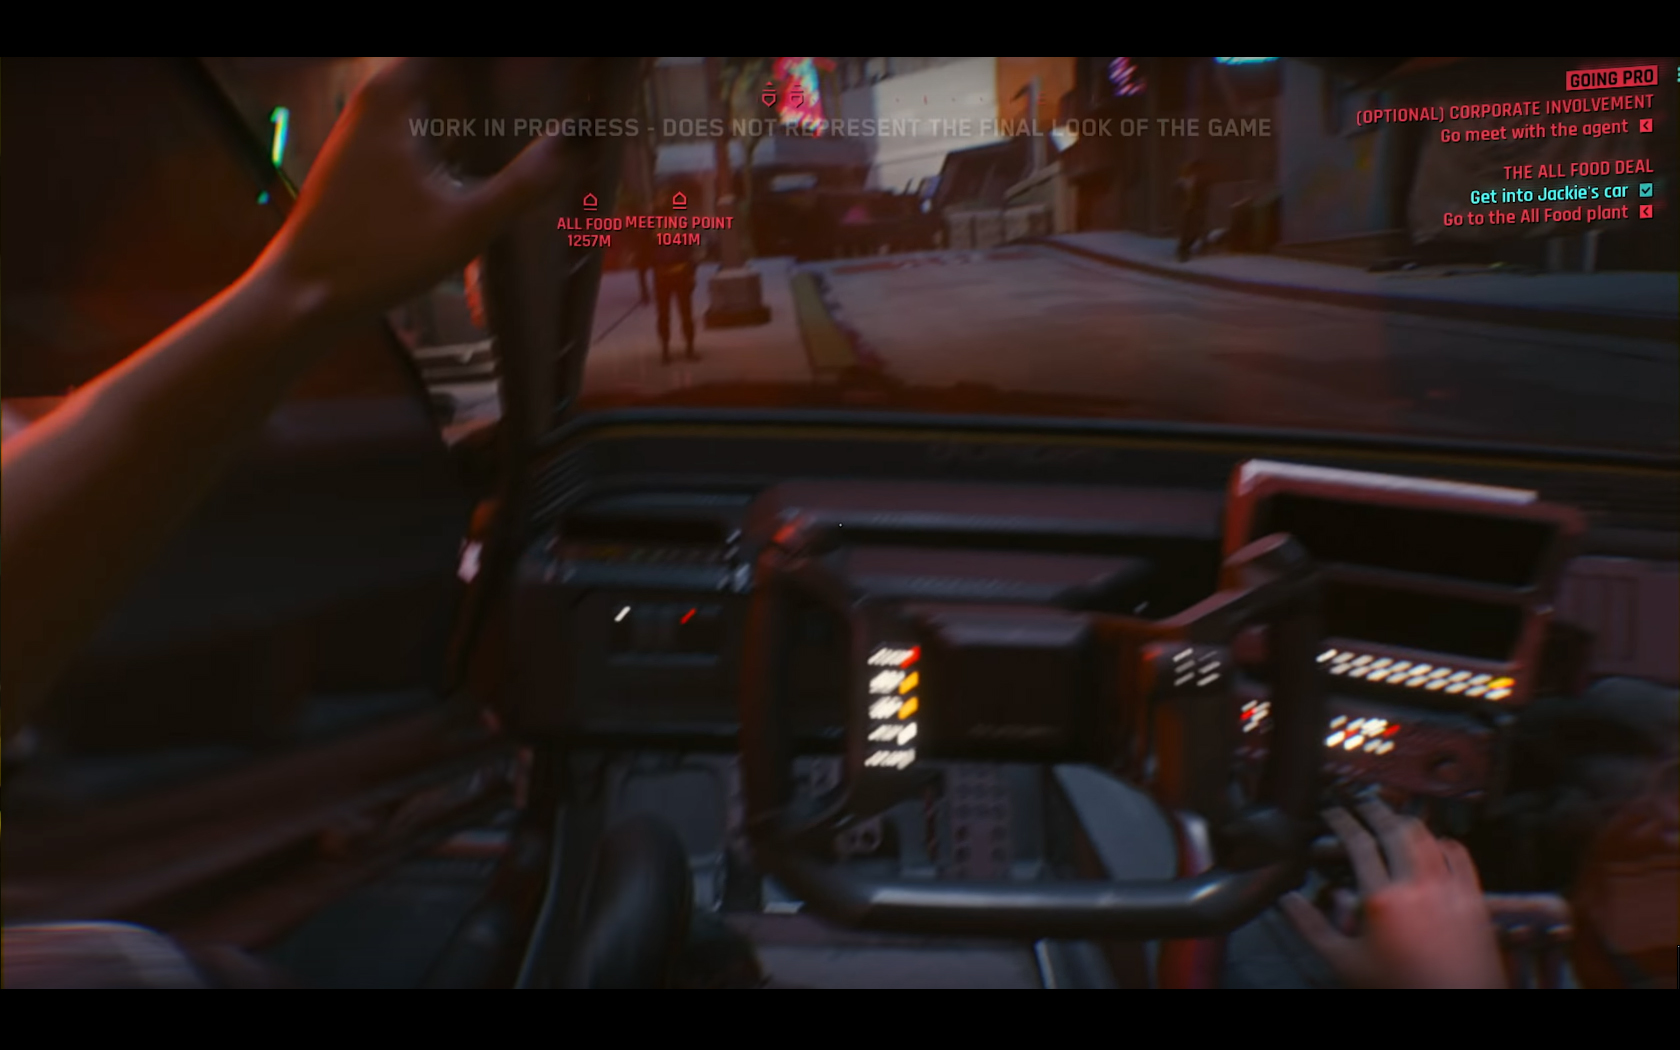 CD Projekt Red - Cyberpunk 2077 - video reveal gameplay - 2018 - screen - sports car QUADRA - onboard start